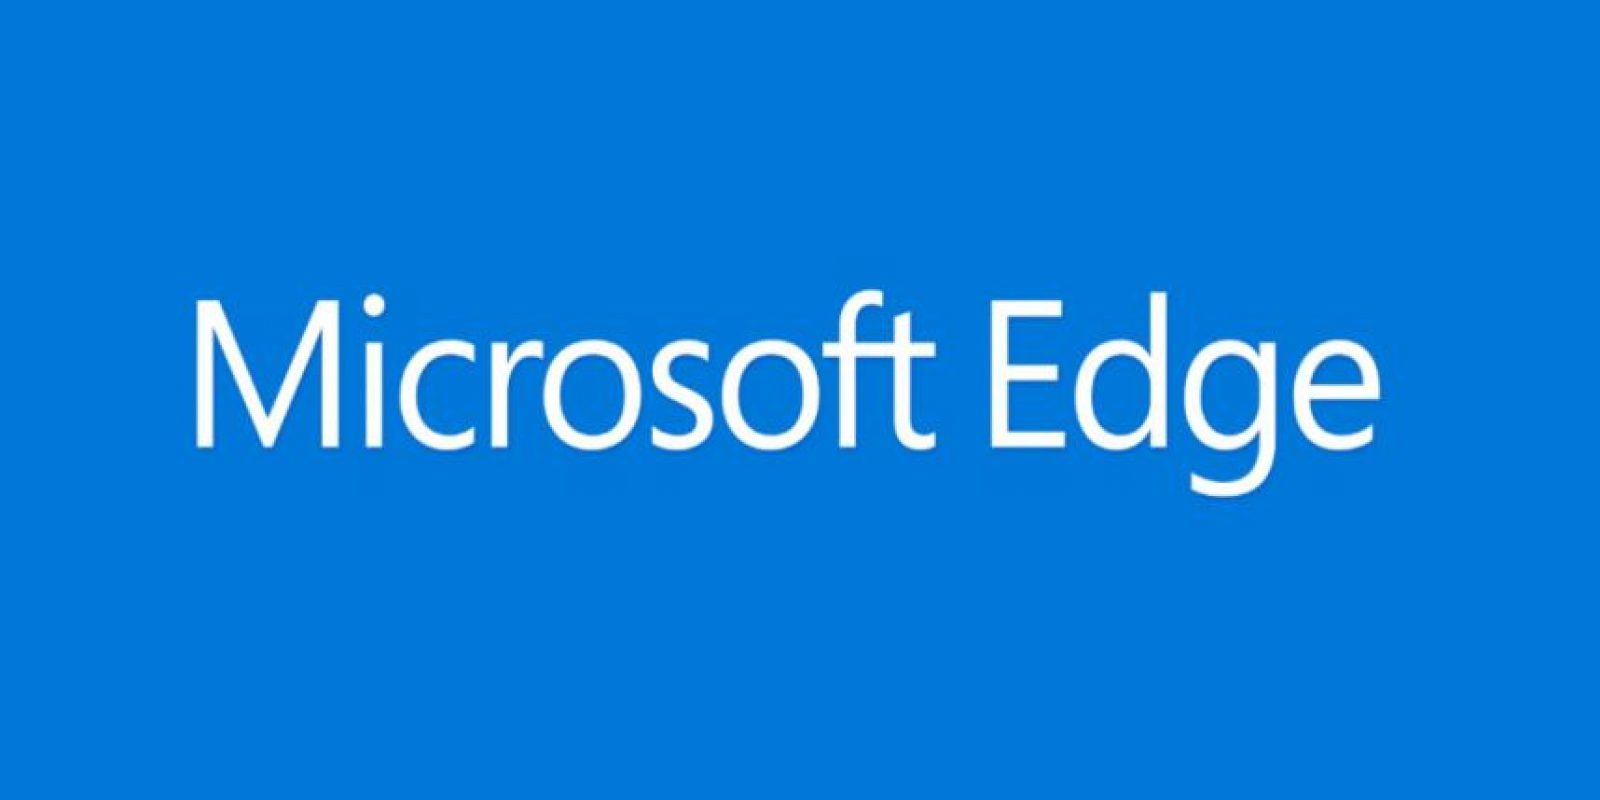 Windows presentó su nuevo navegador Edge con un video promocional Foto: Microsoft Windows